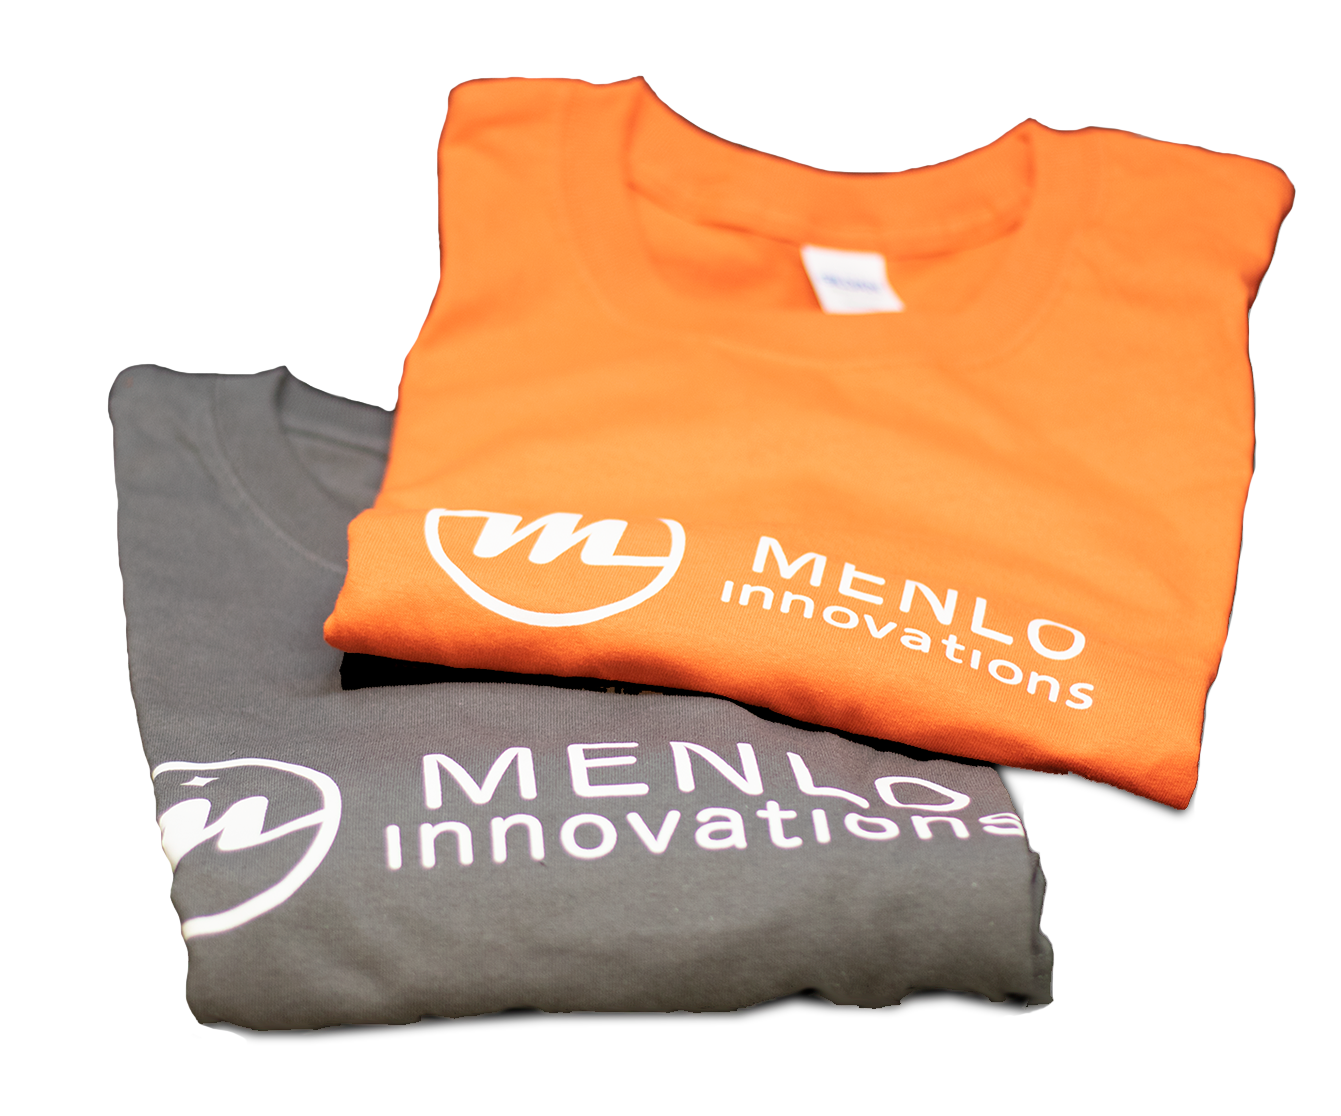 Menlo Innovations T-Shirt